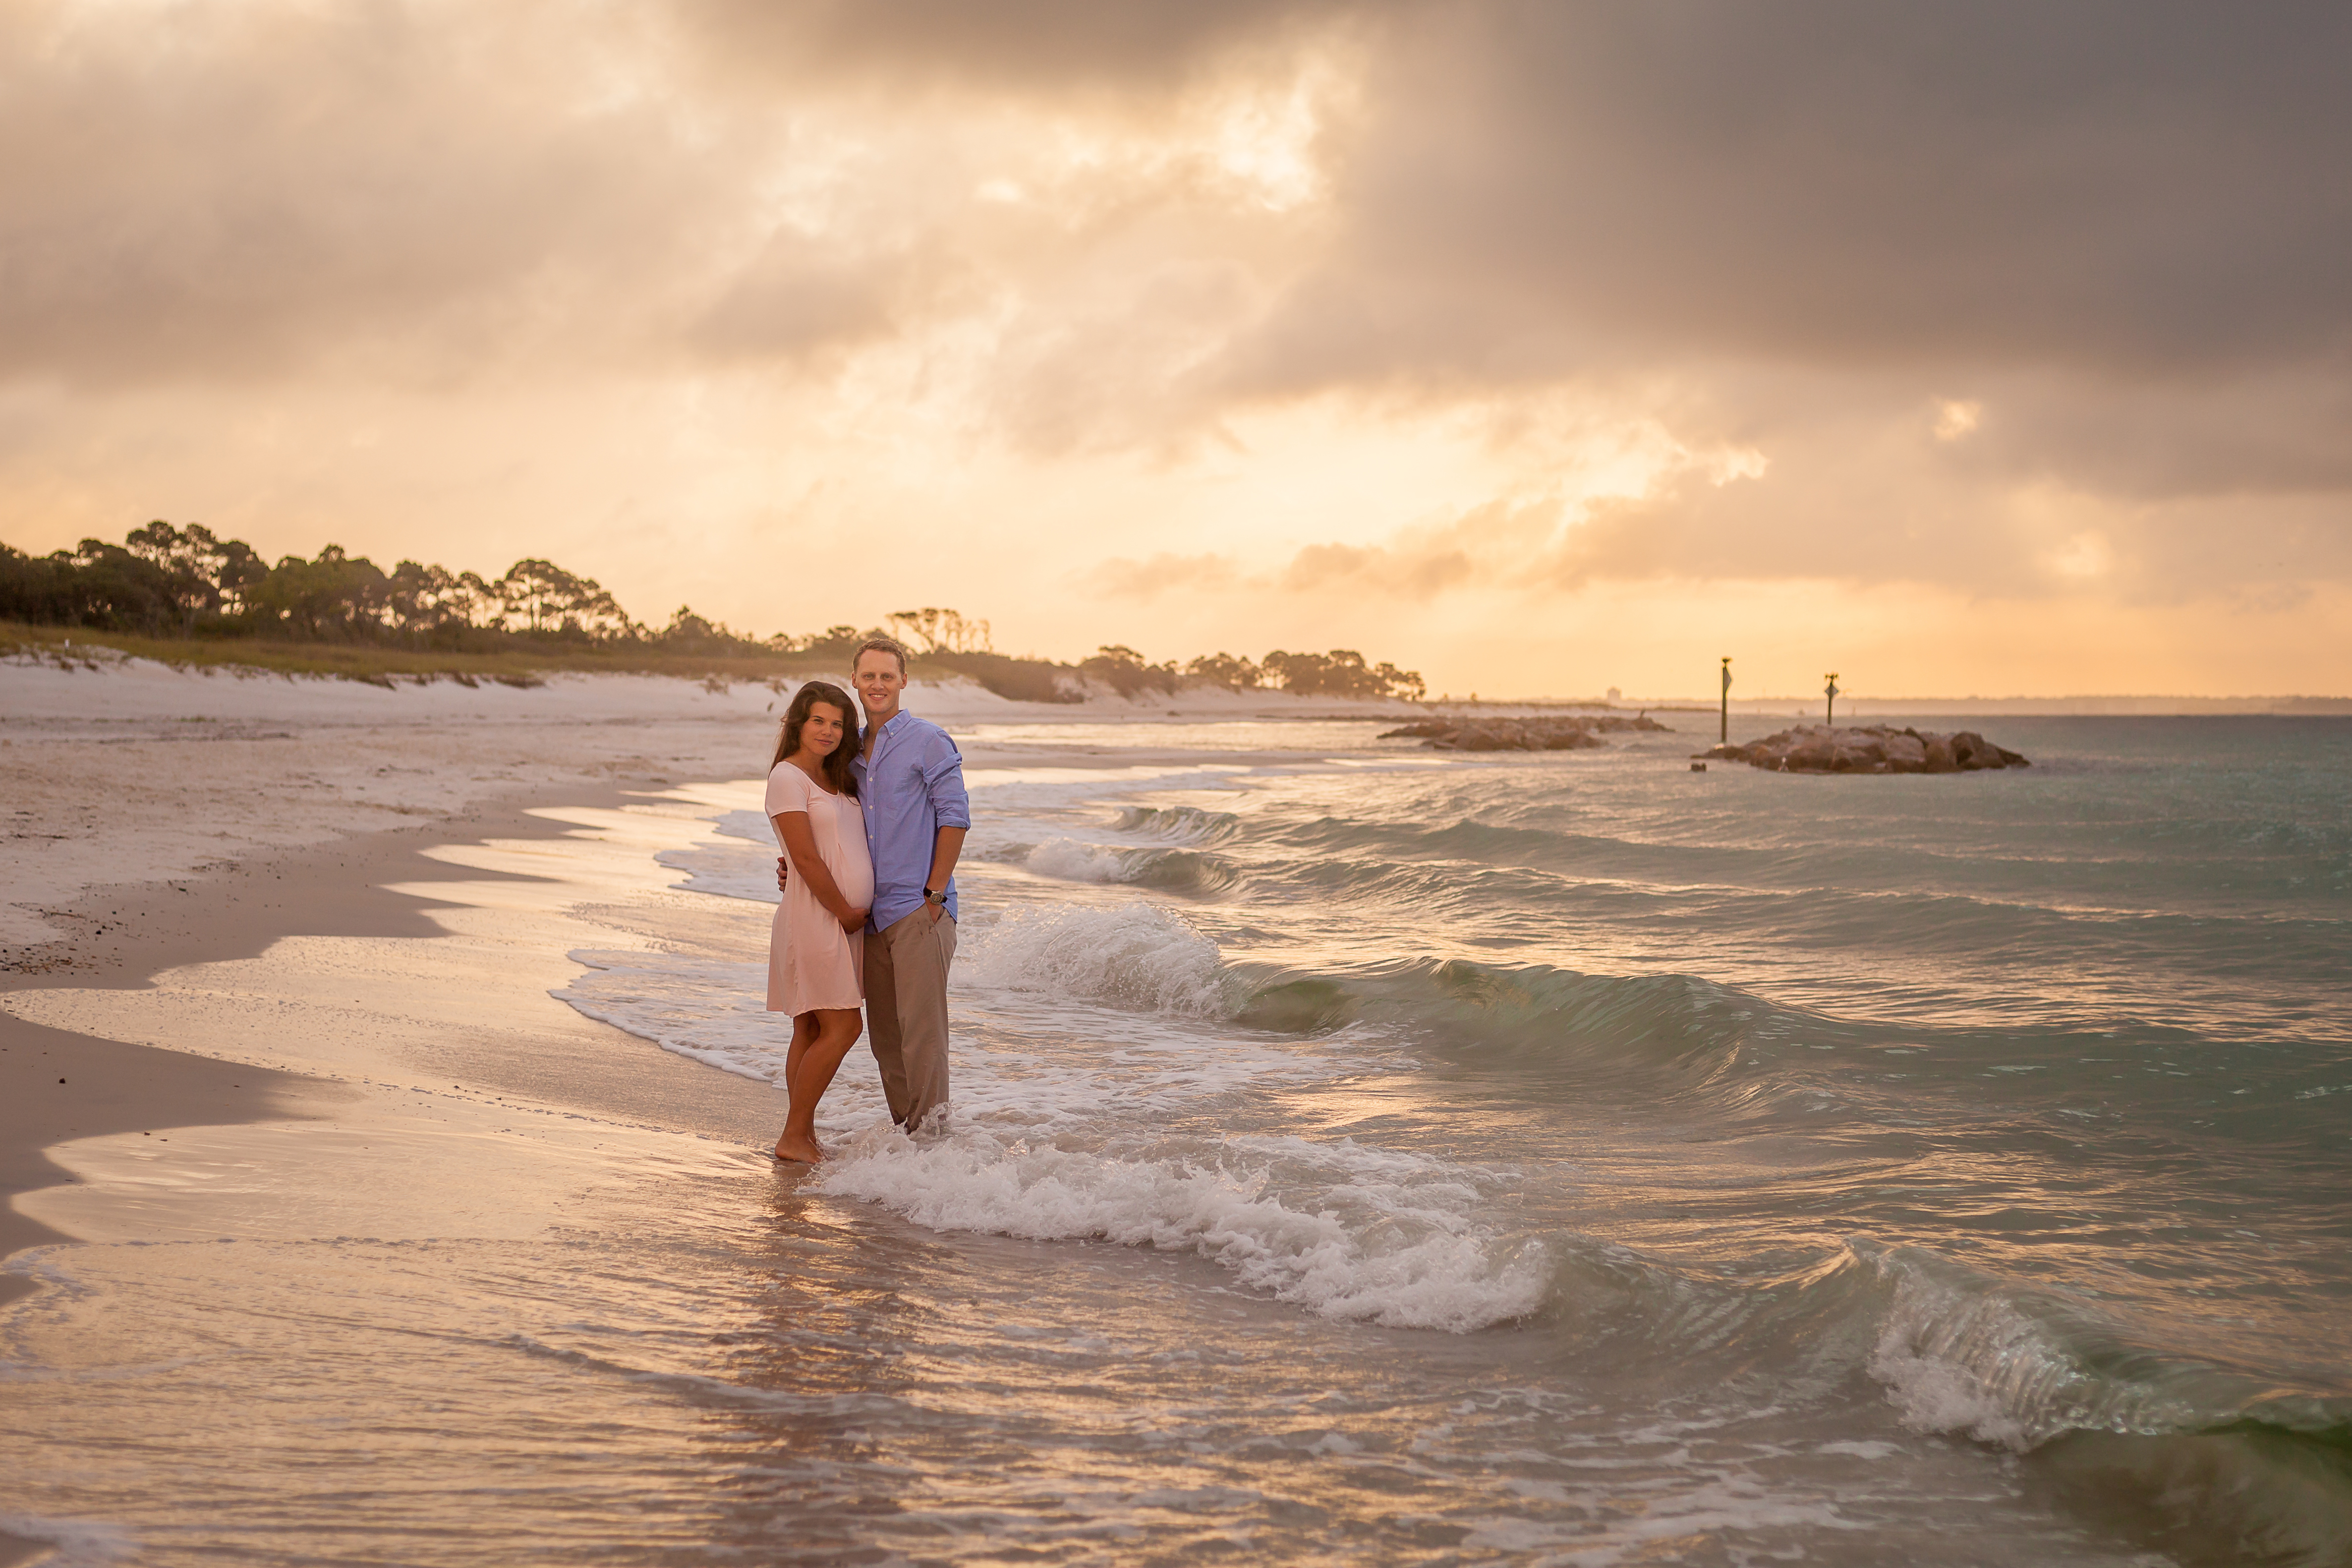 sunrise beach dating site Online dating in sunrise beach for free the only 100% free online dating site for dating, love, relationships and friendship register here and chat with other sunrise beach singles.